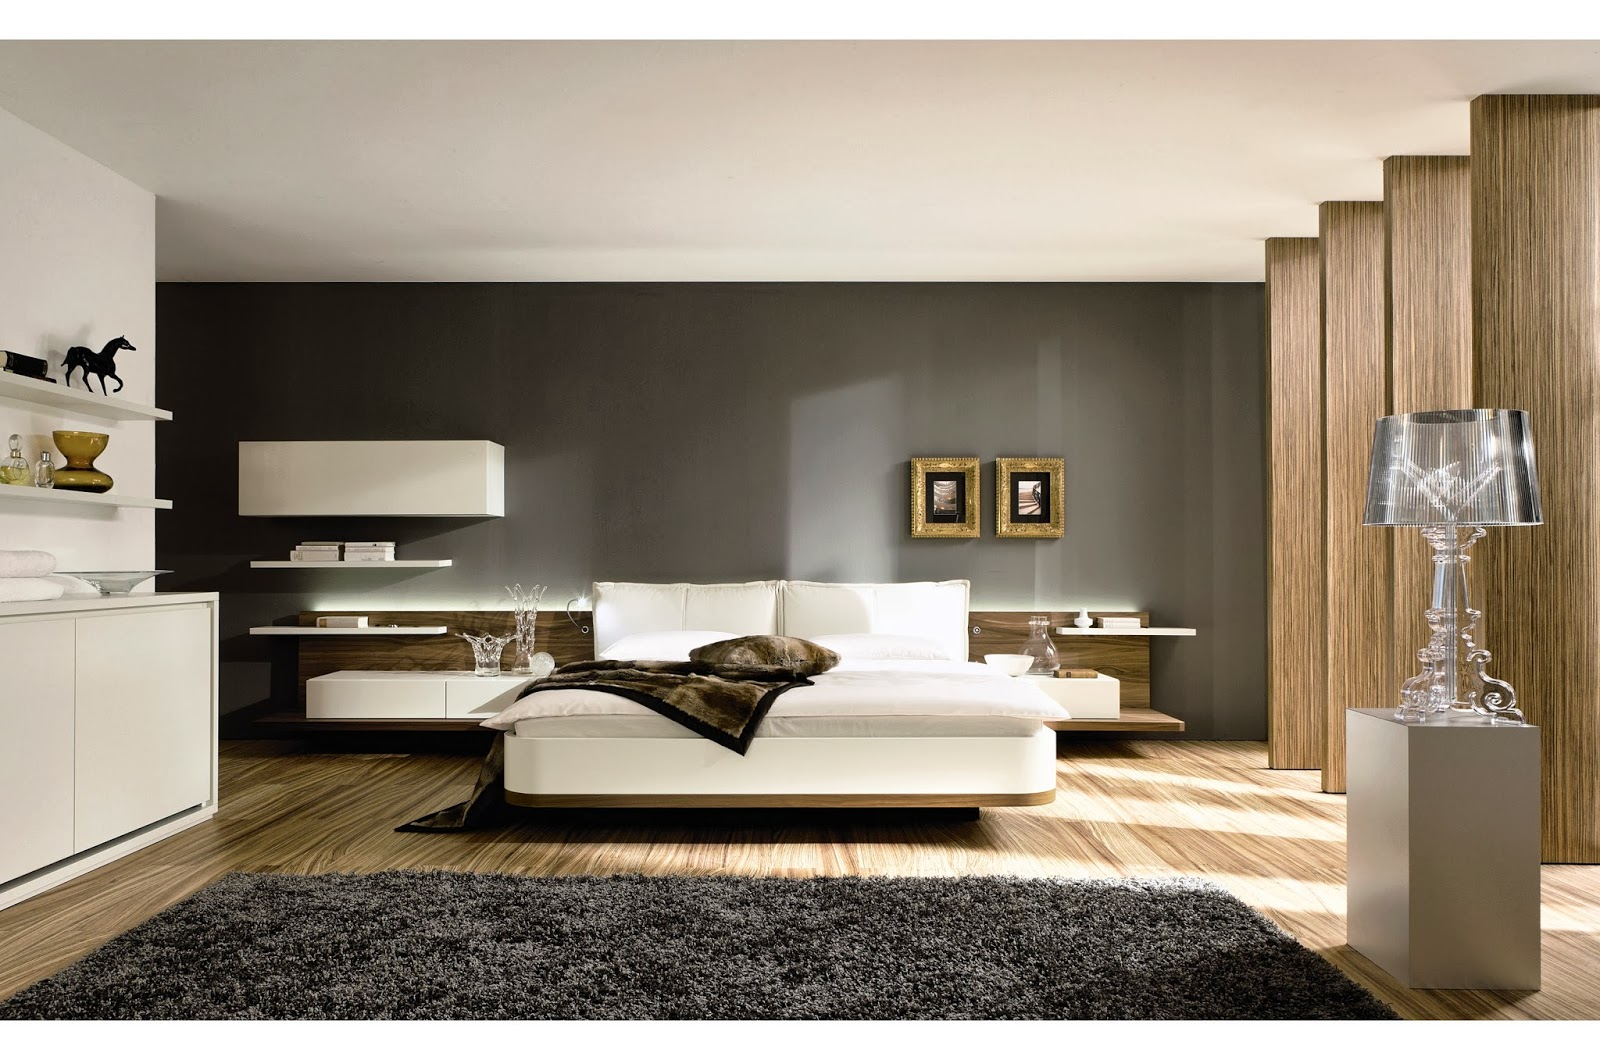 Modern bedroom interior design - Design for bedroom pics ...